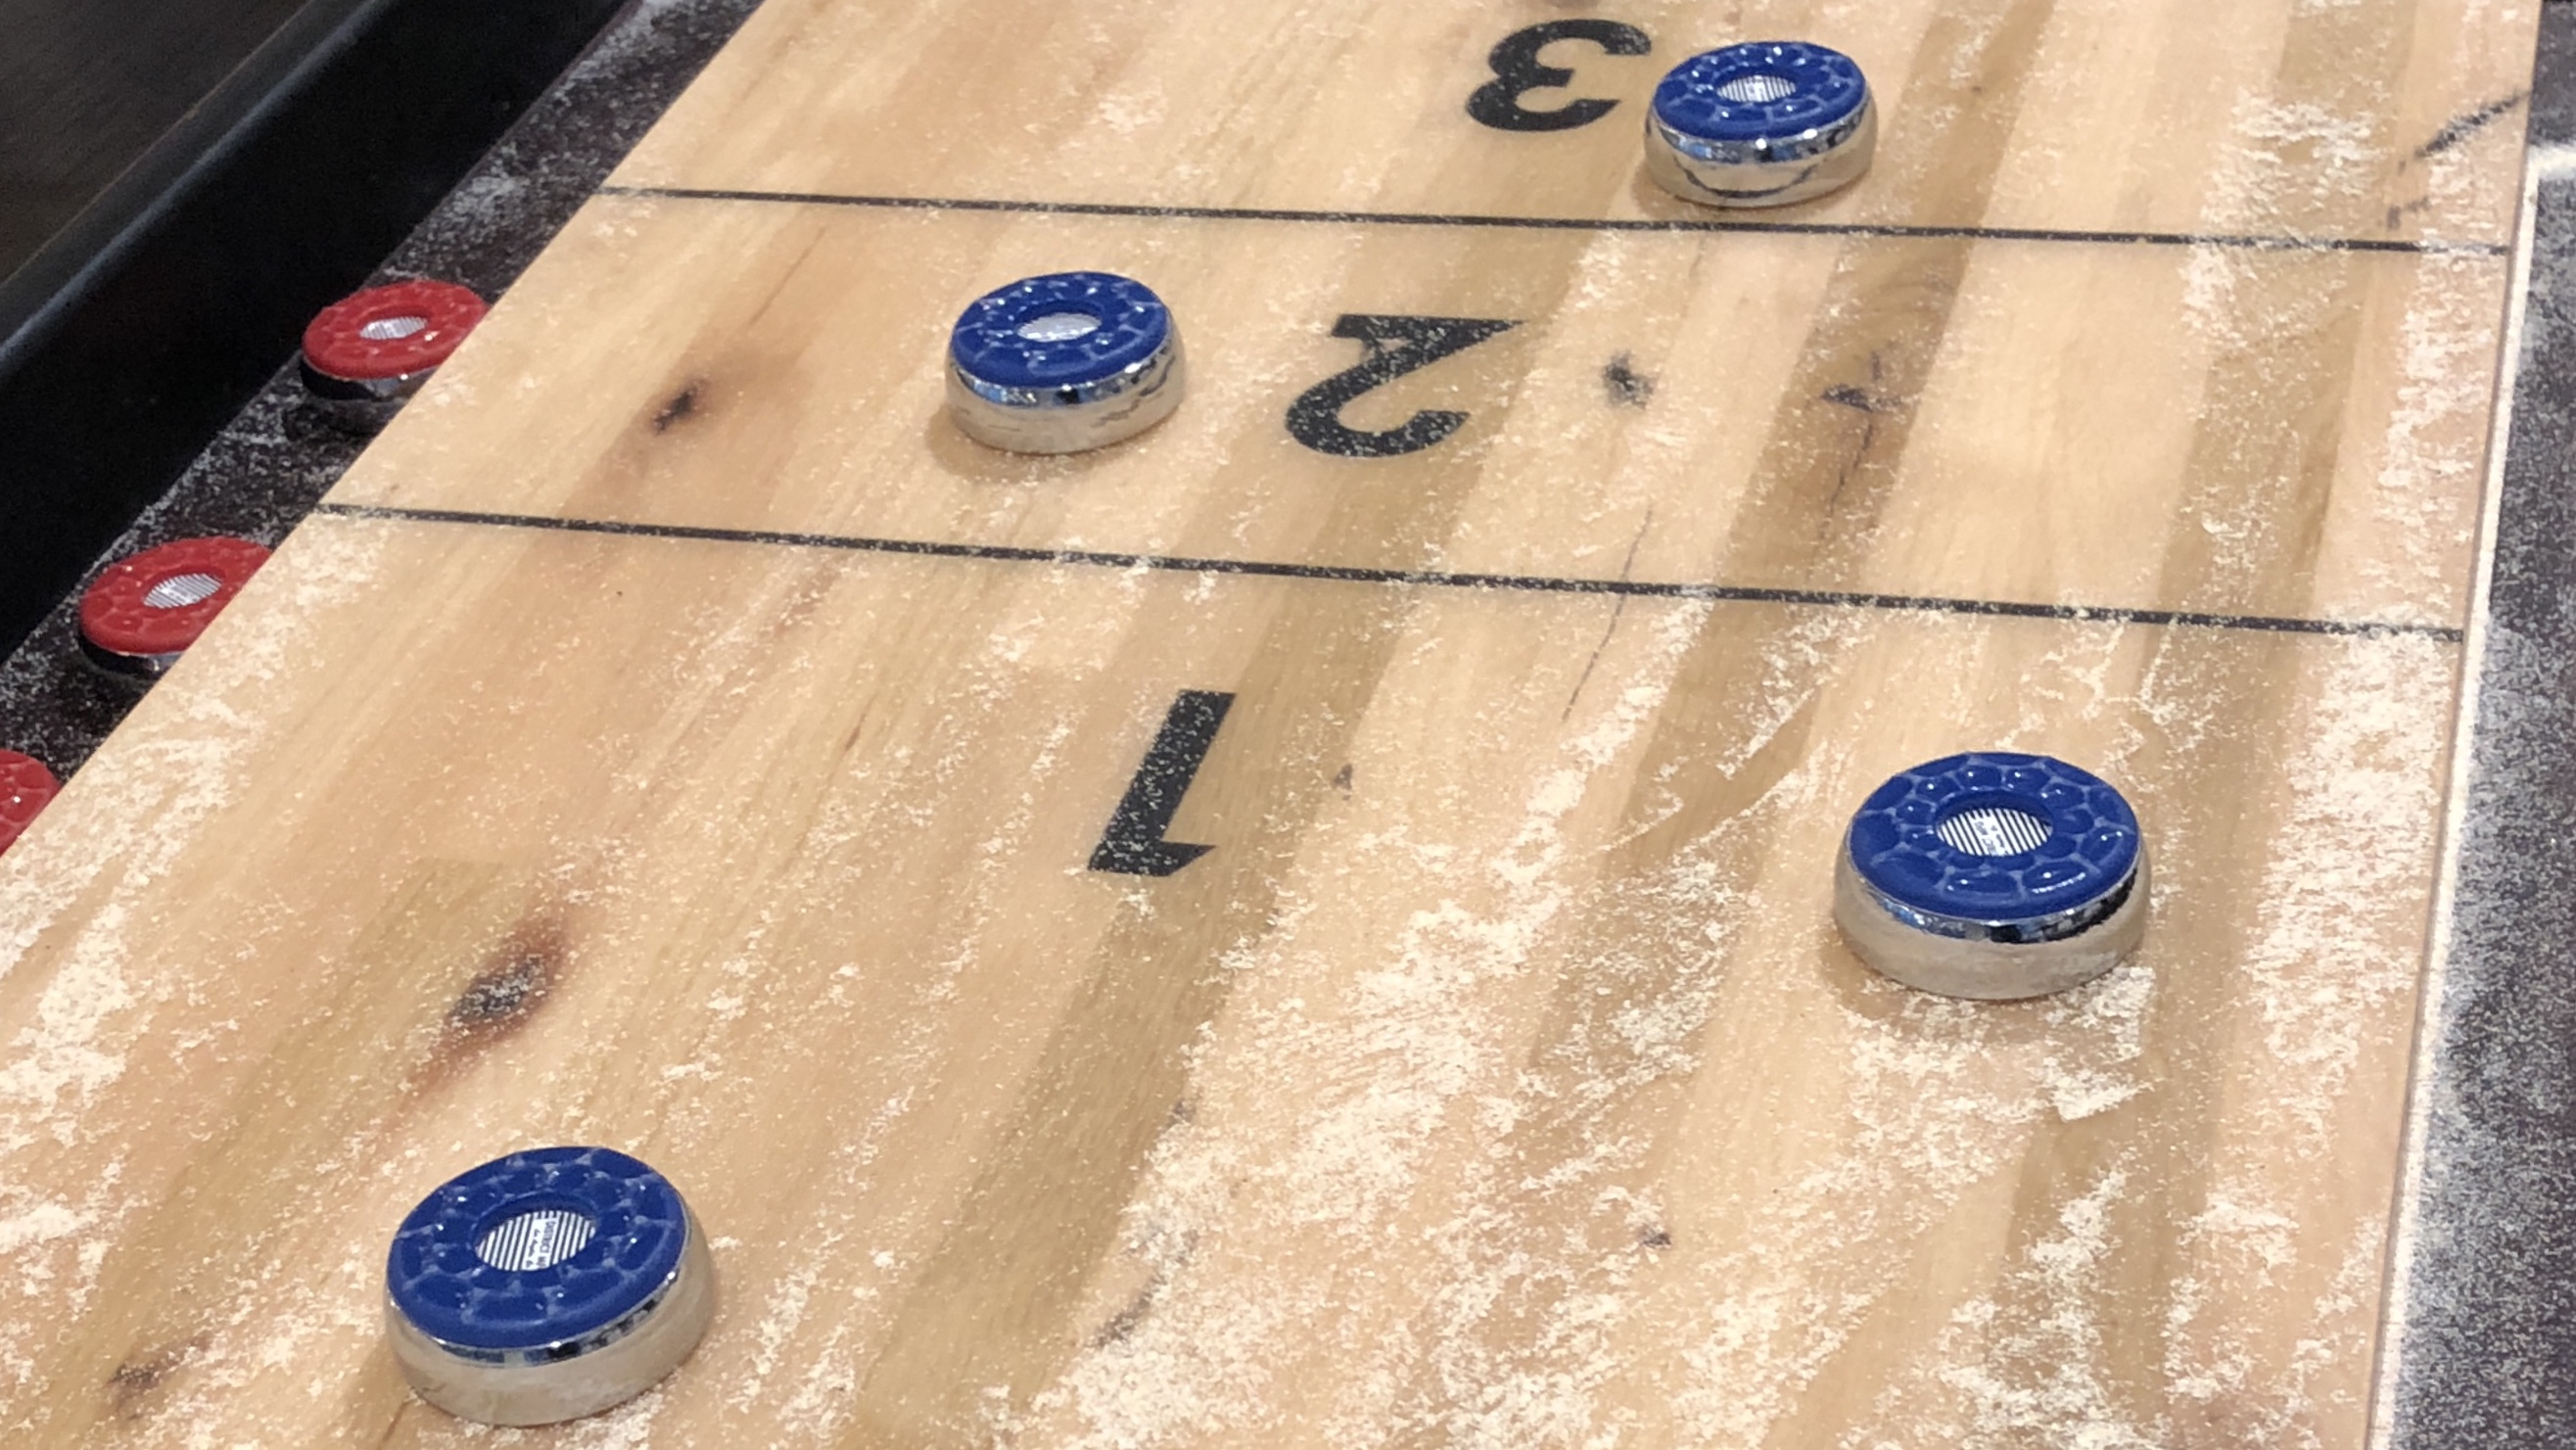 Shuffleboard Crazy Eights